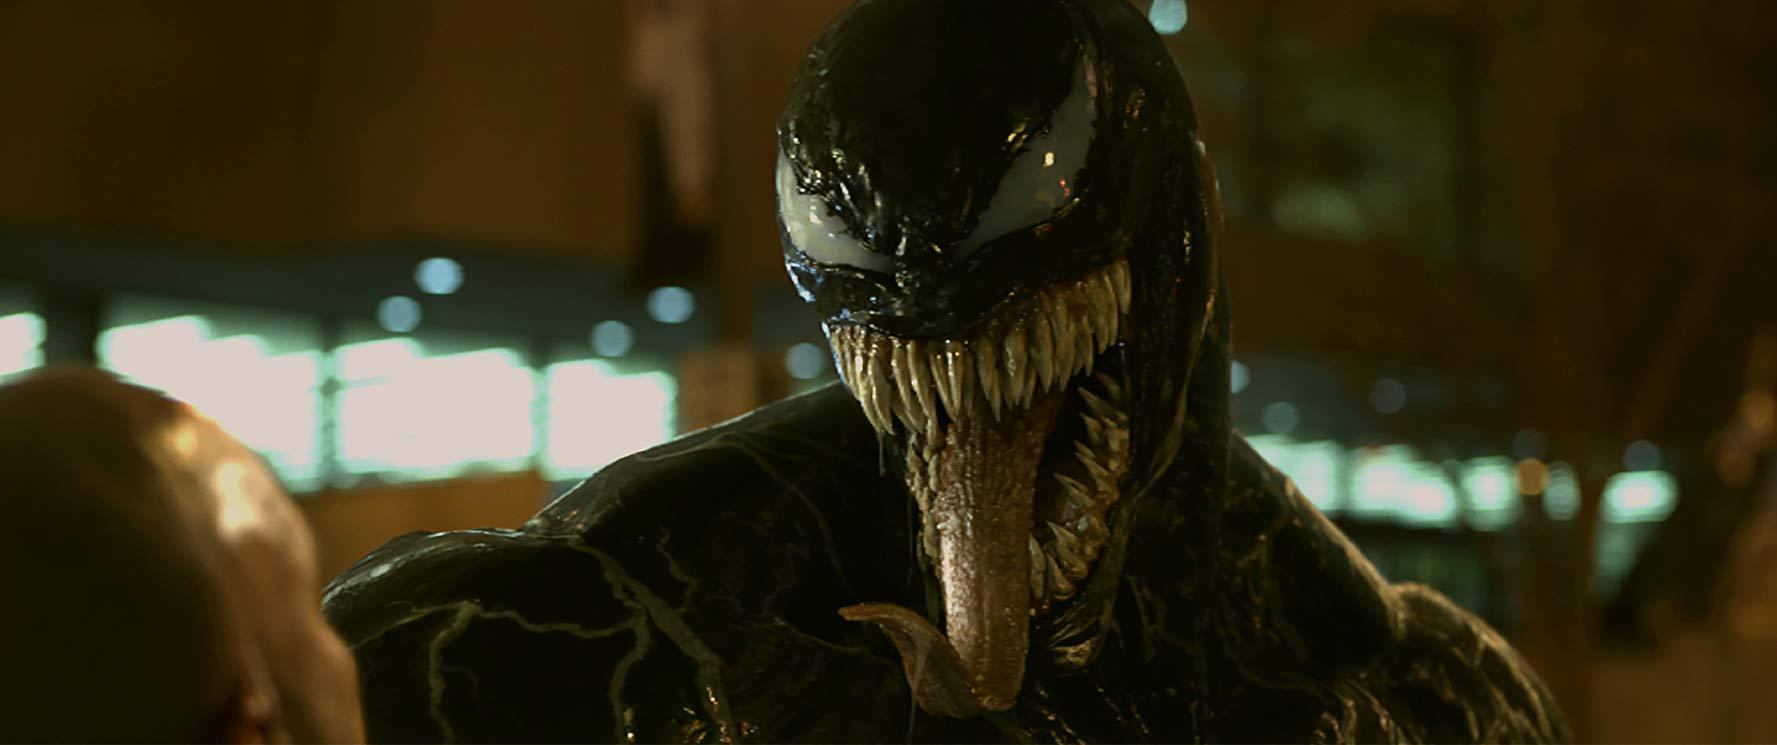 'Venom 2' might be R-rated